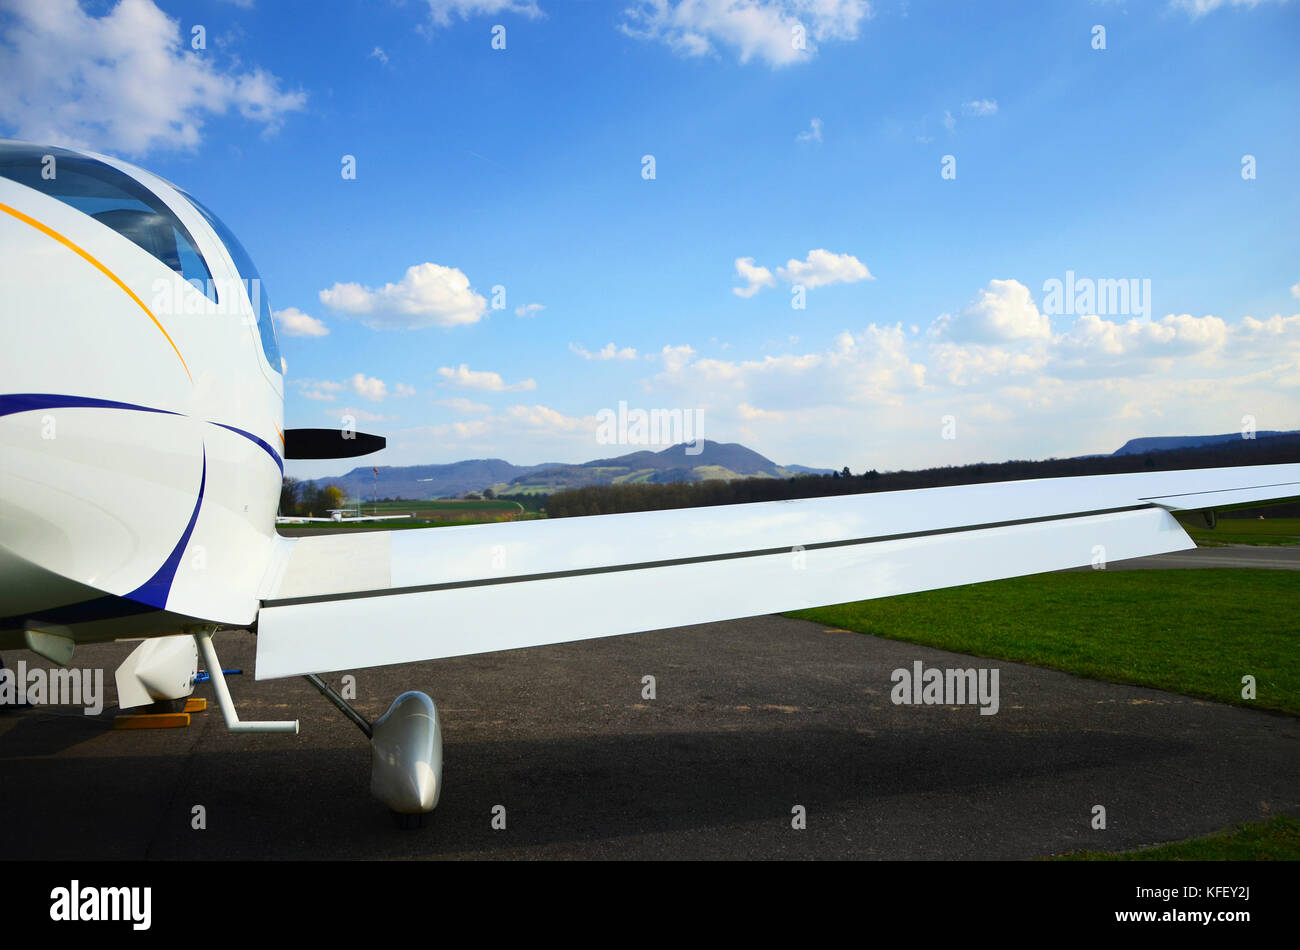 Lightweight plane with transparent cabin, seen in south Germany, March 2017 - Stock Image